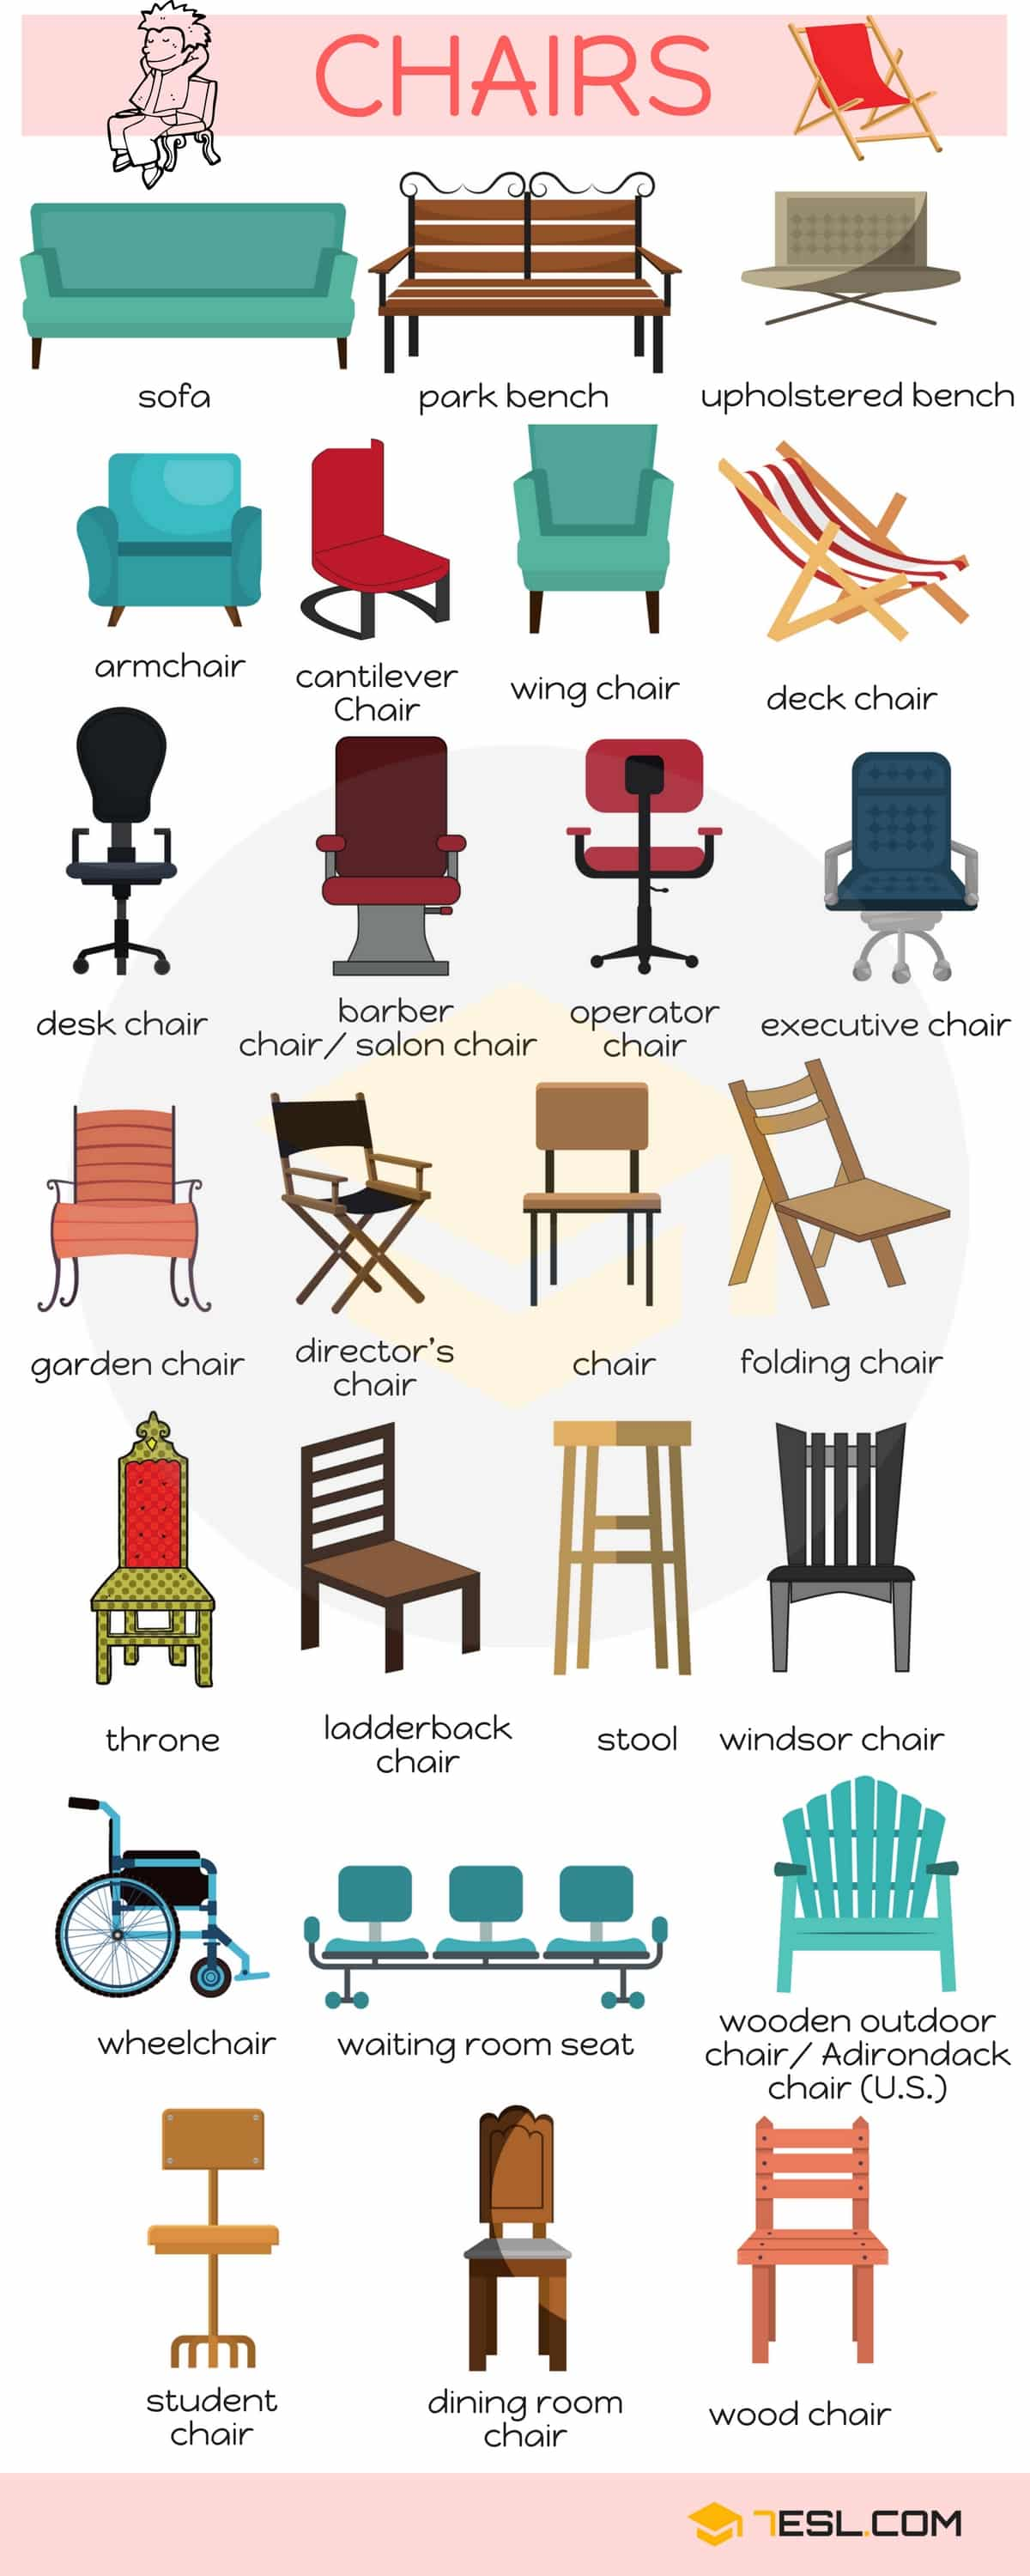 styles of chairs names baby rocking chair cushions vocabulary in english 7 e s l